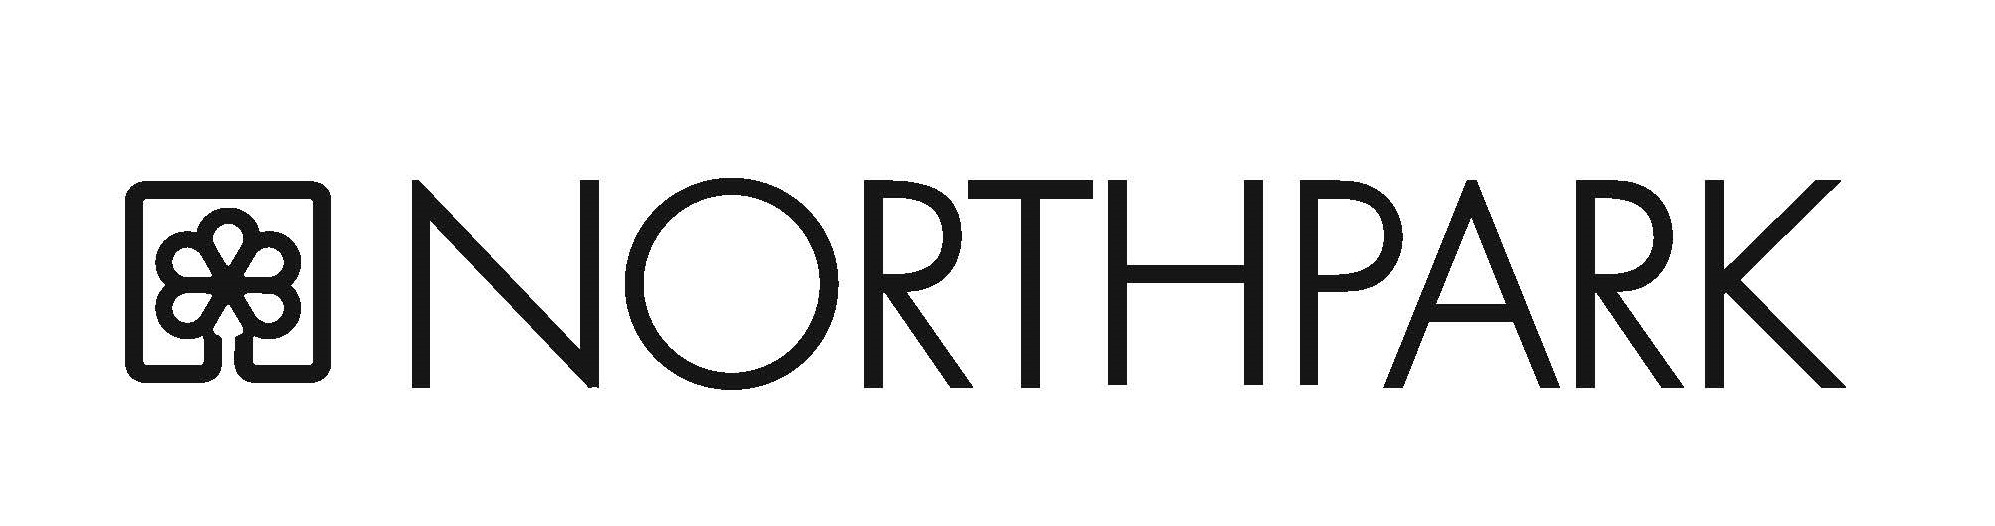 NorthPark Logo with Bu#B4EBE.jpg